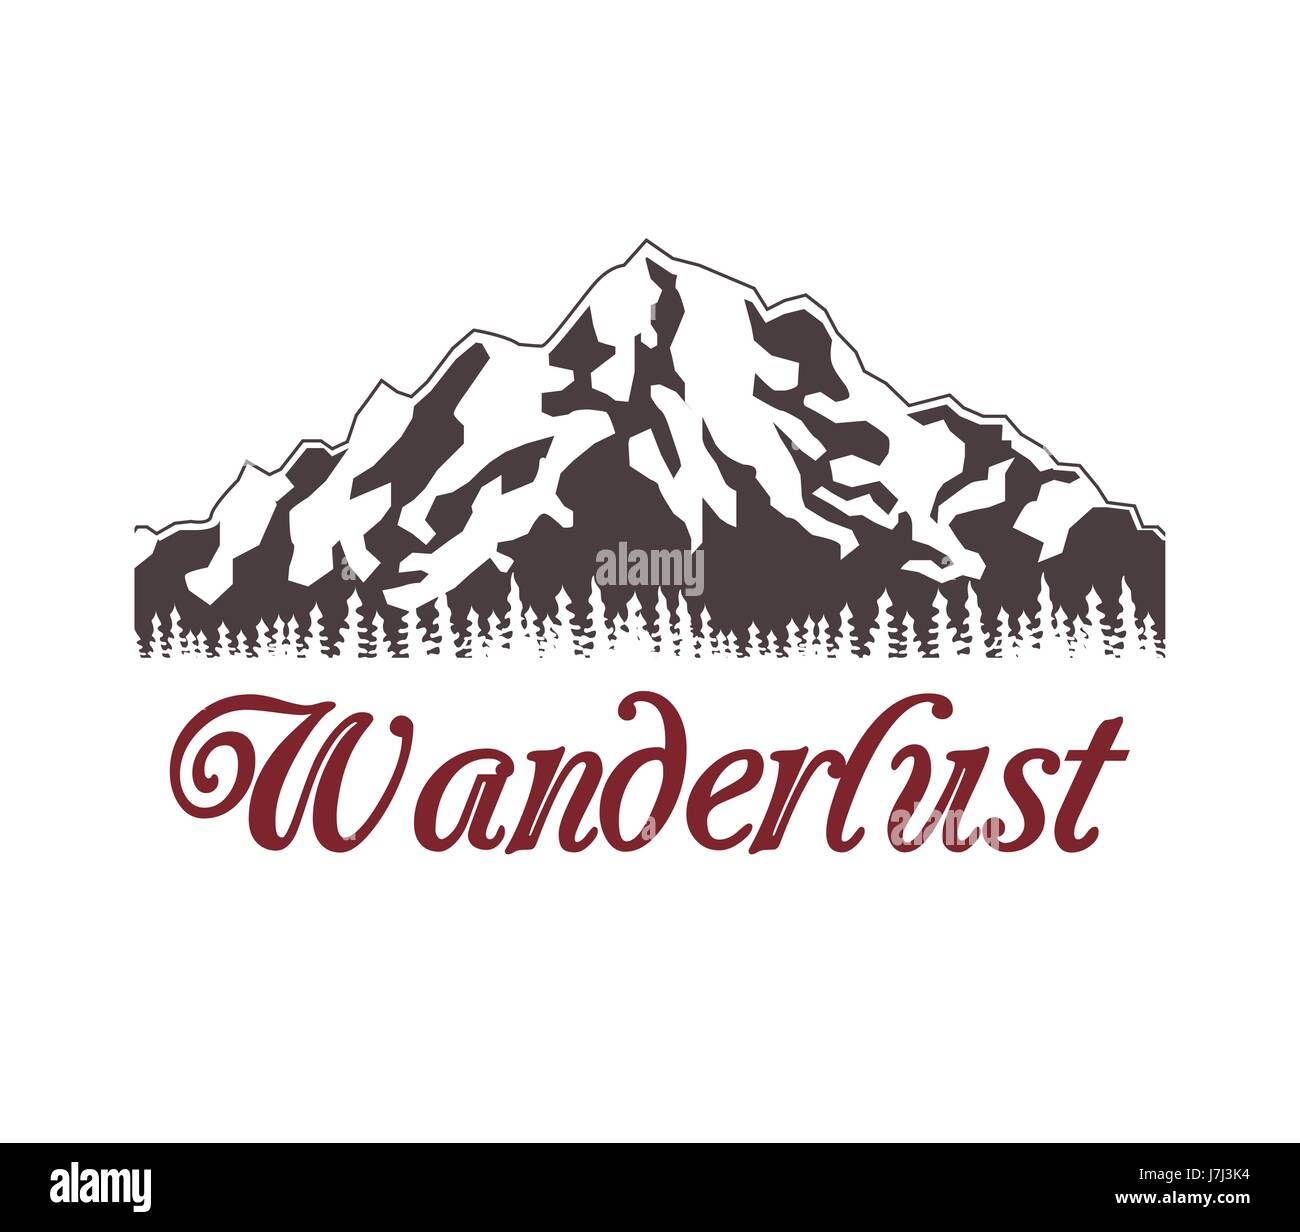 poster of snowy mountains with landscape forest wanderlust - Stock Image